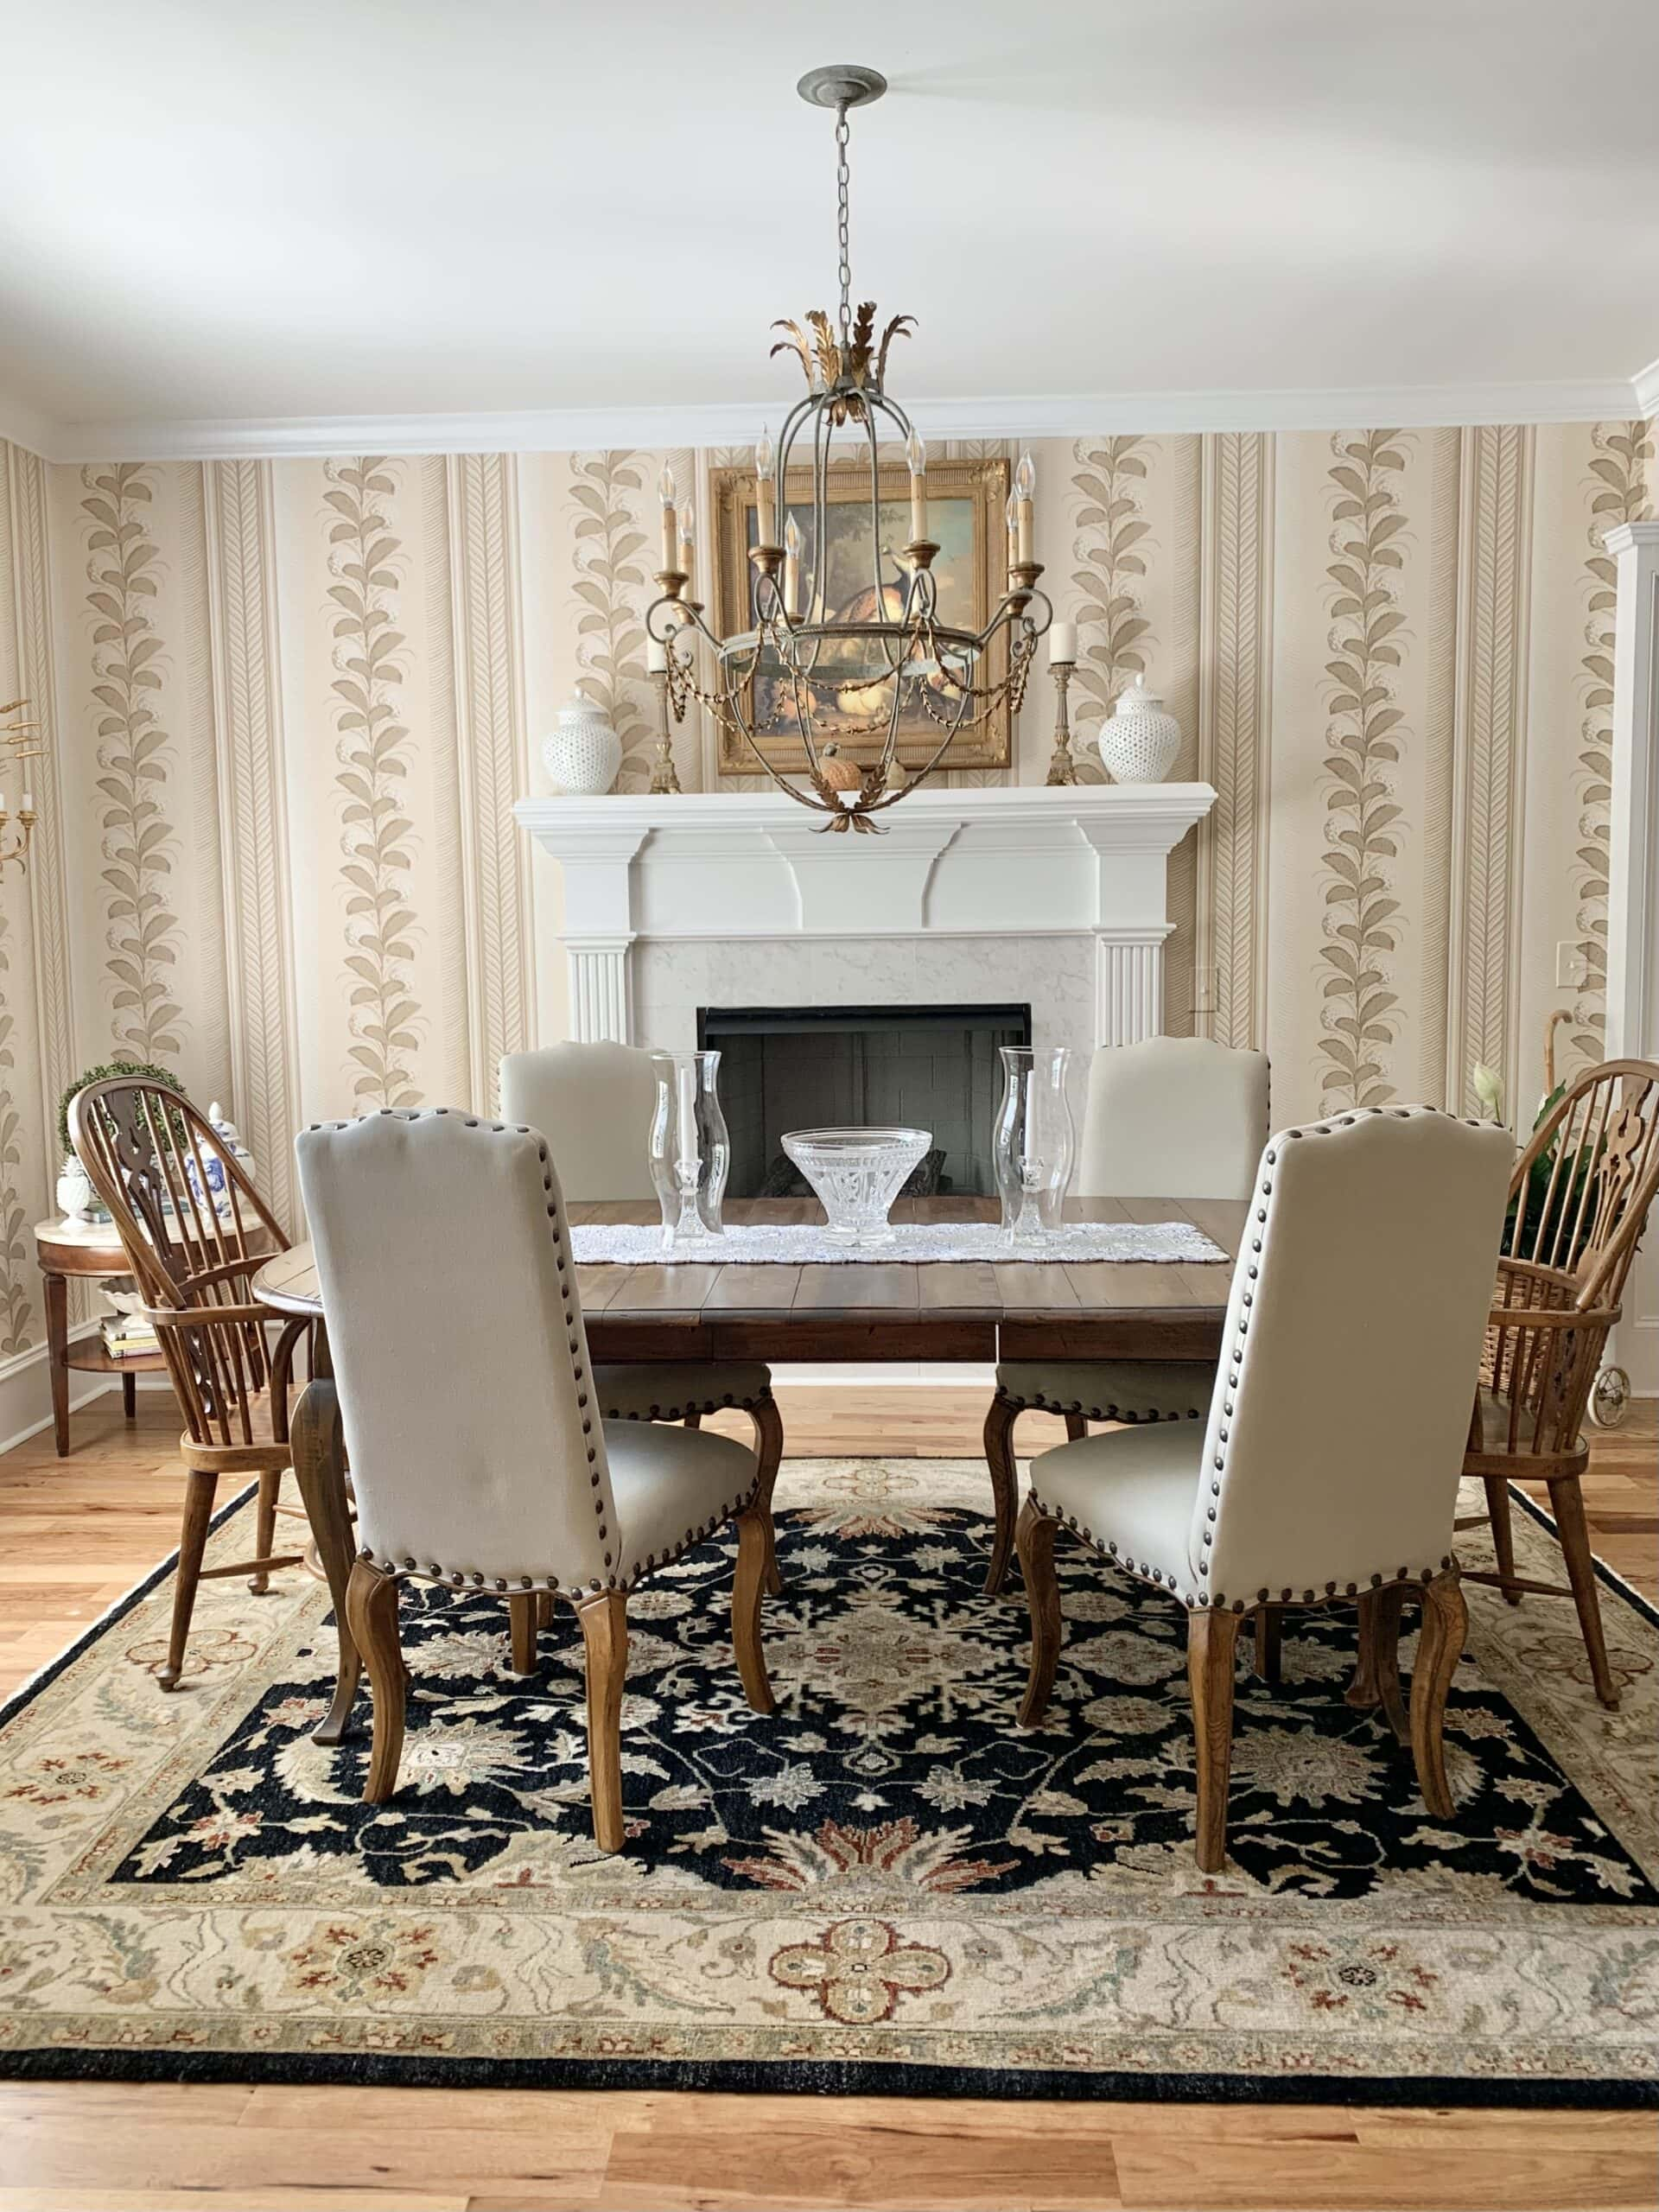 French country style home tour Schumacher wallpaper